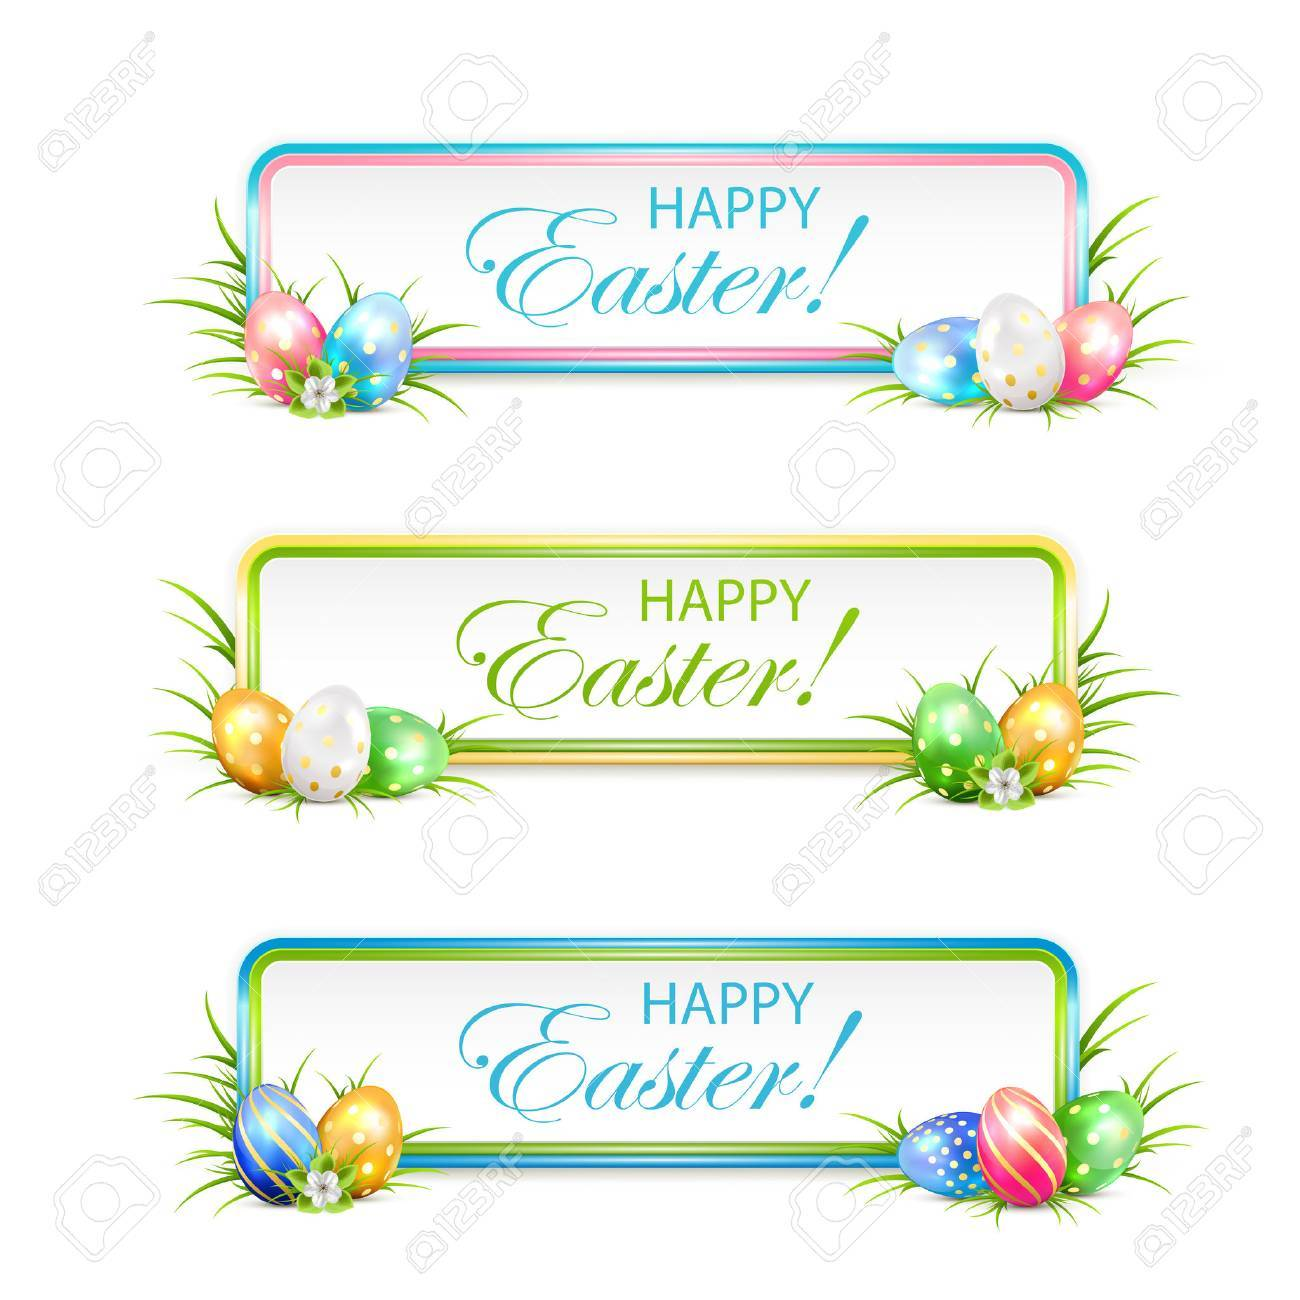 Easter banners with multicolored eggs in a grass, illustration. - 52084181